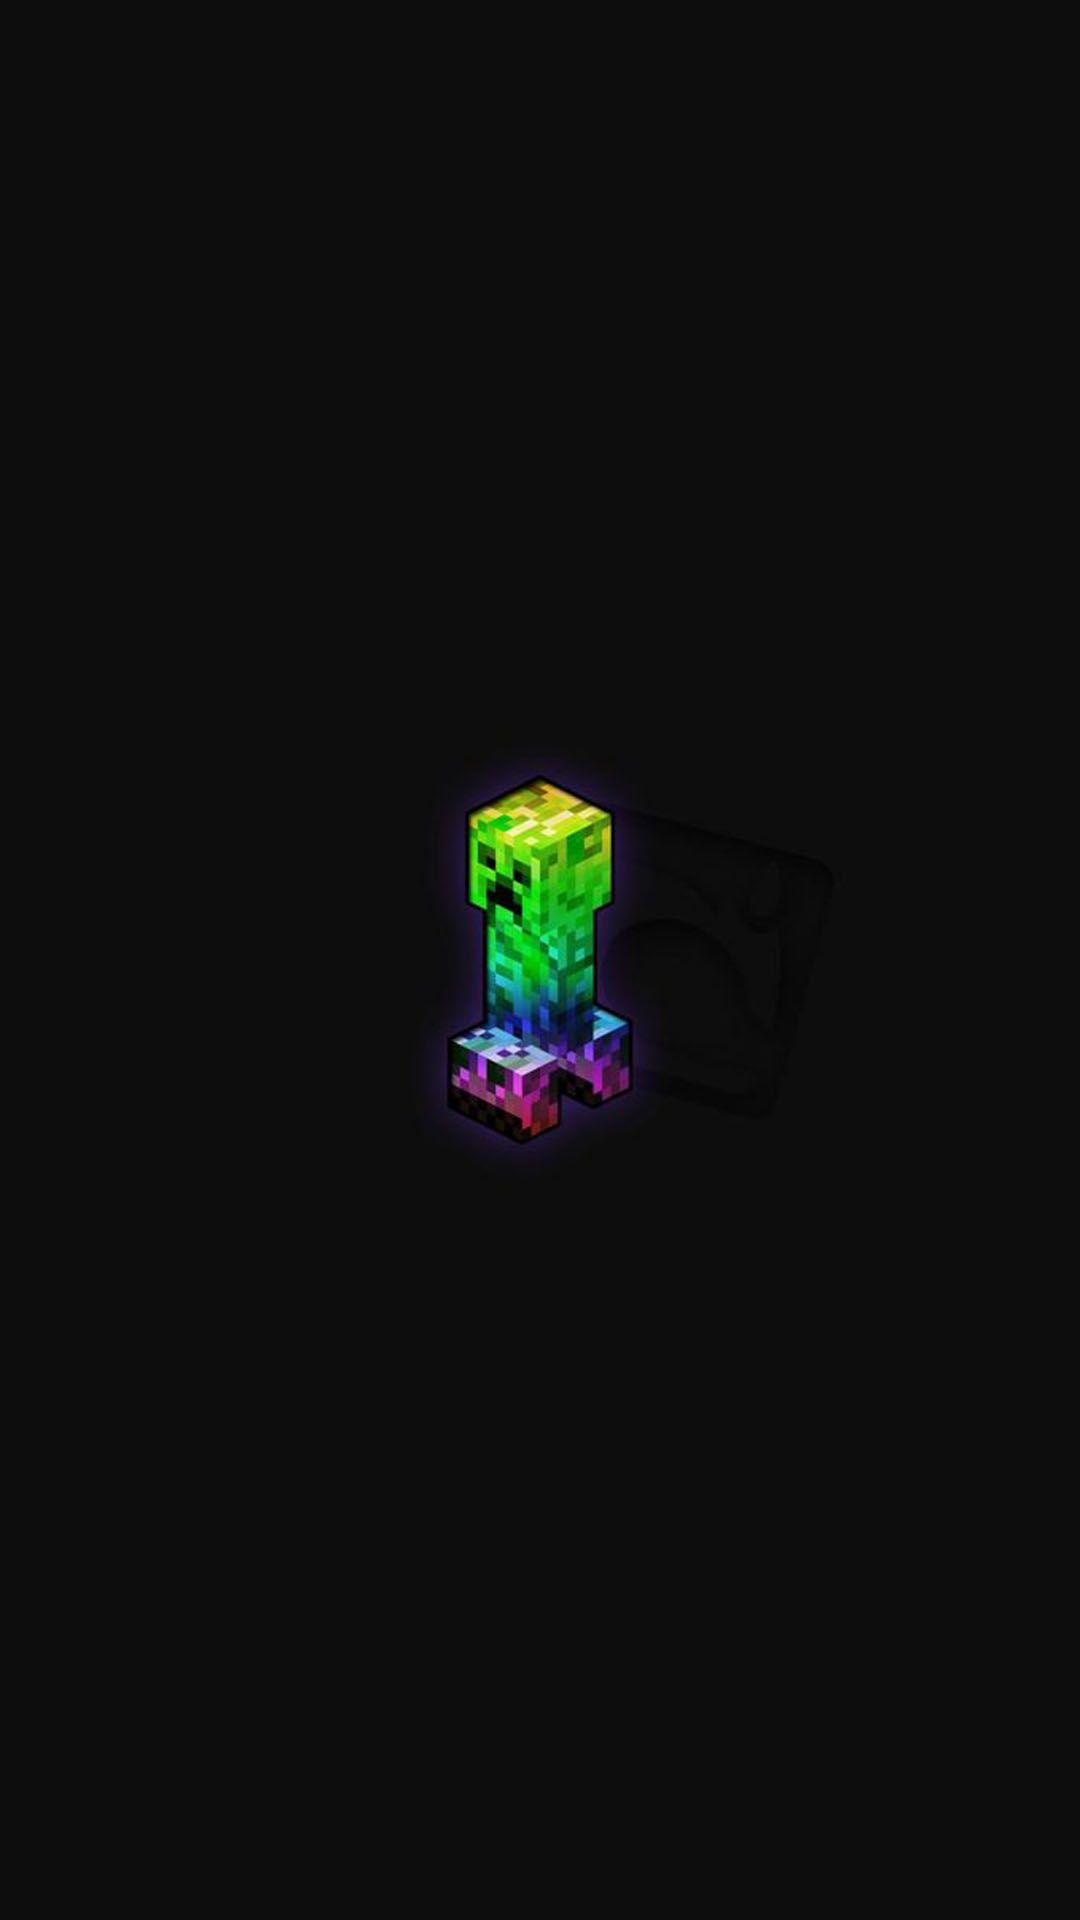 Creeper Minecraft Iphone Background In 2020 Minecraft Wallpaper Iphone Background Creeper Minecraft